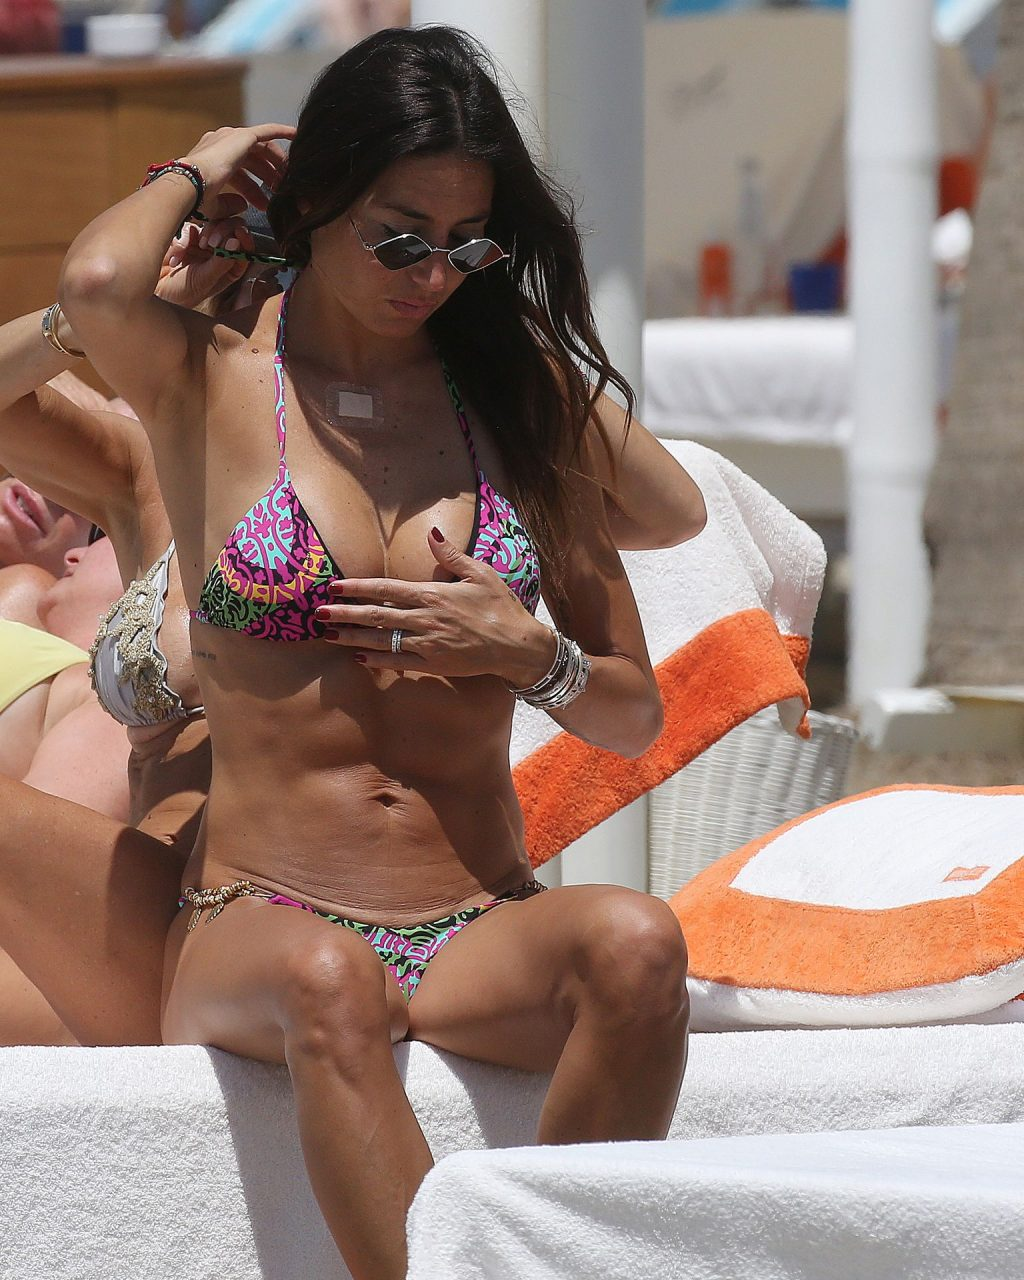 Elisabetta Gregoraci Shows Her Hot Body In Forte Dei Marmi (16 Photos)